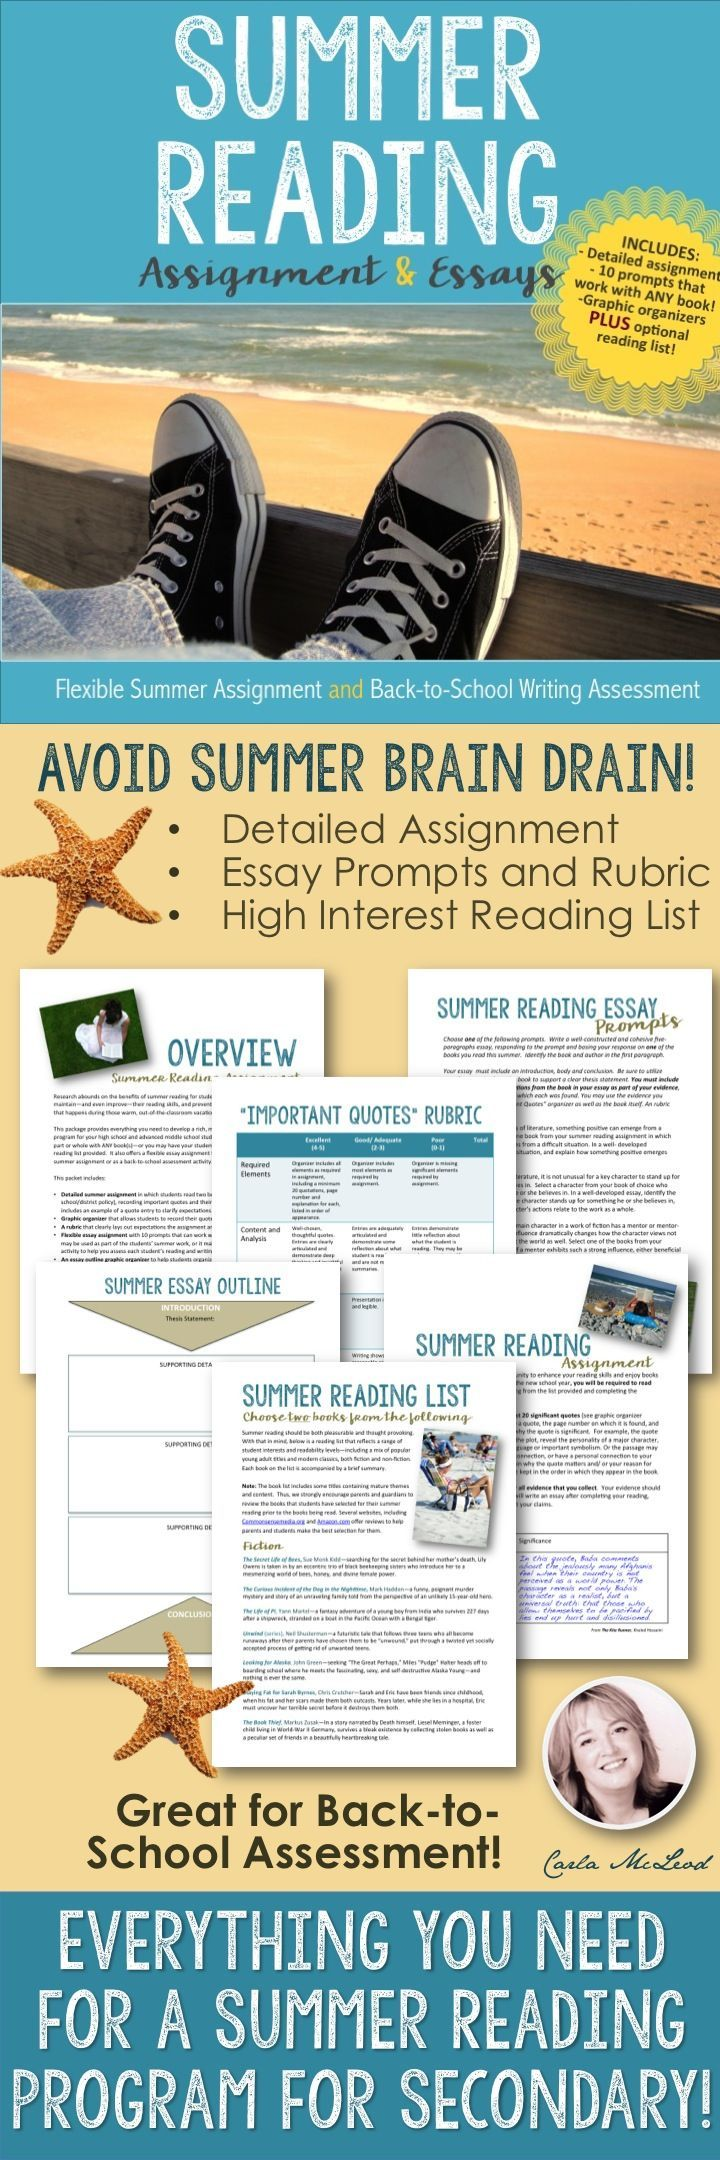 summer reading assignment Please join us in kicking off our 2018 summer reading program toms river regional school district is dedicated to making reading a top priority for all children we believe that it is especially important for students to engage in reading during the summer months and they can do so by participating in our annual district wide summer reading program.